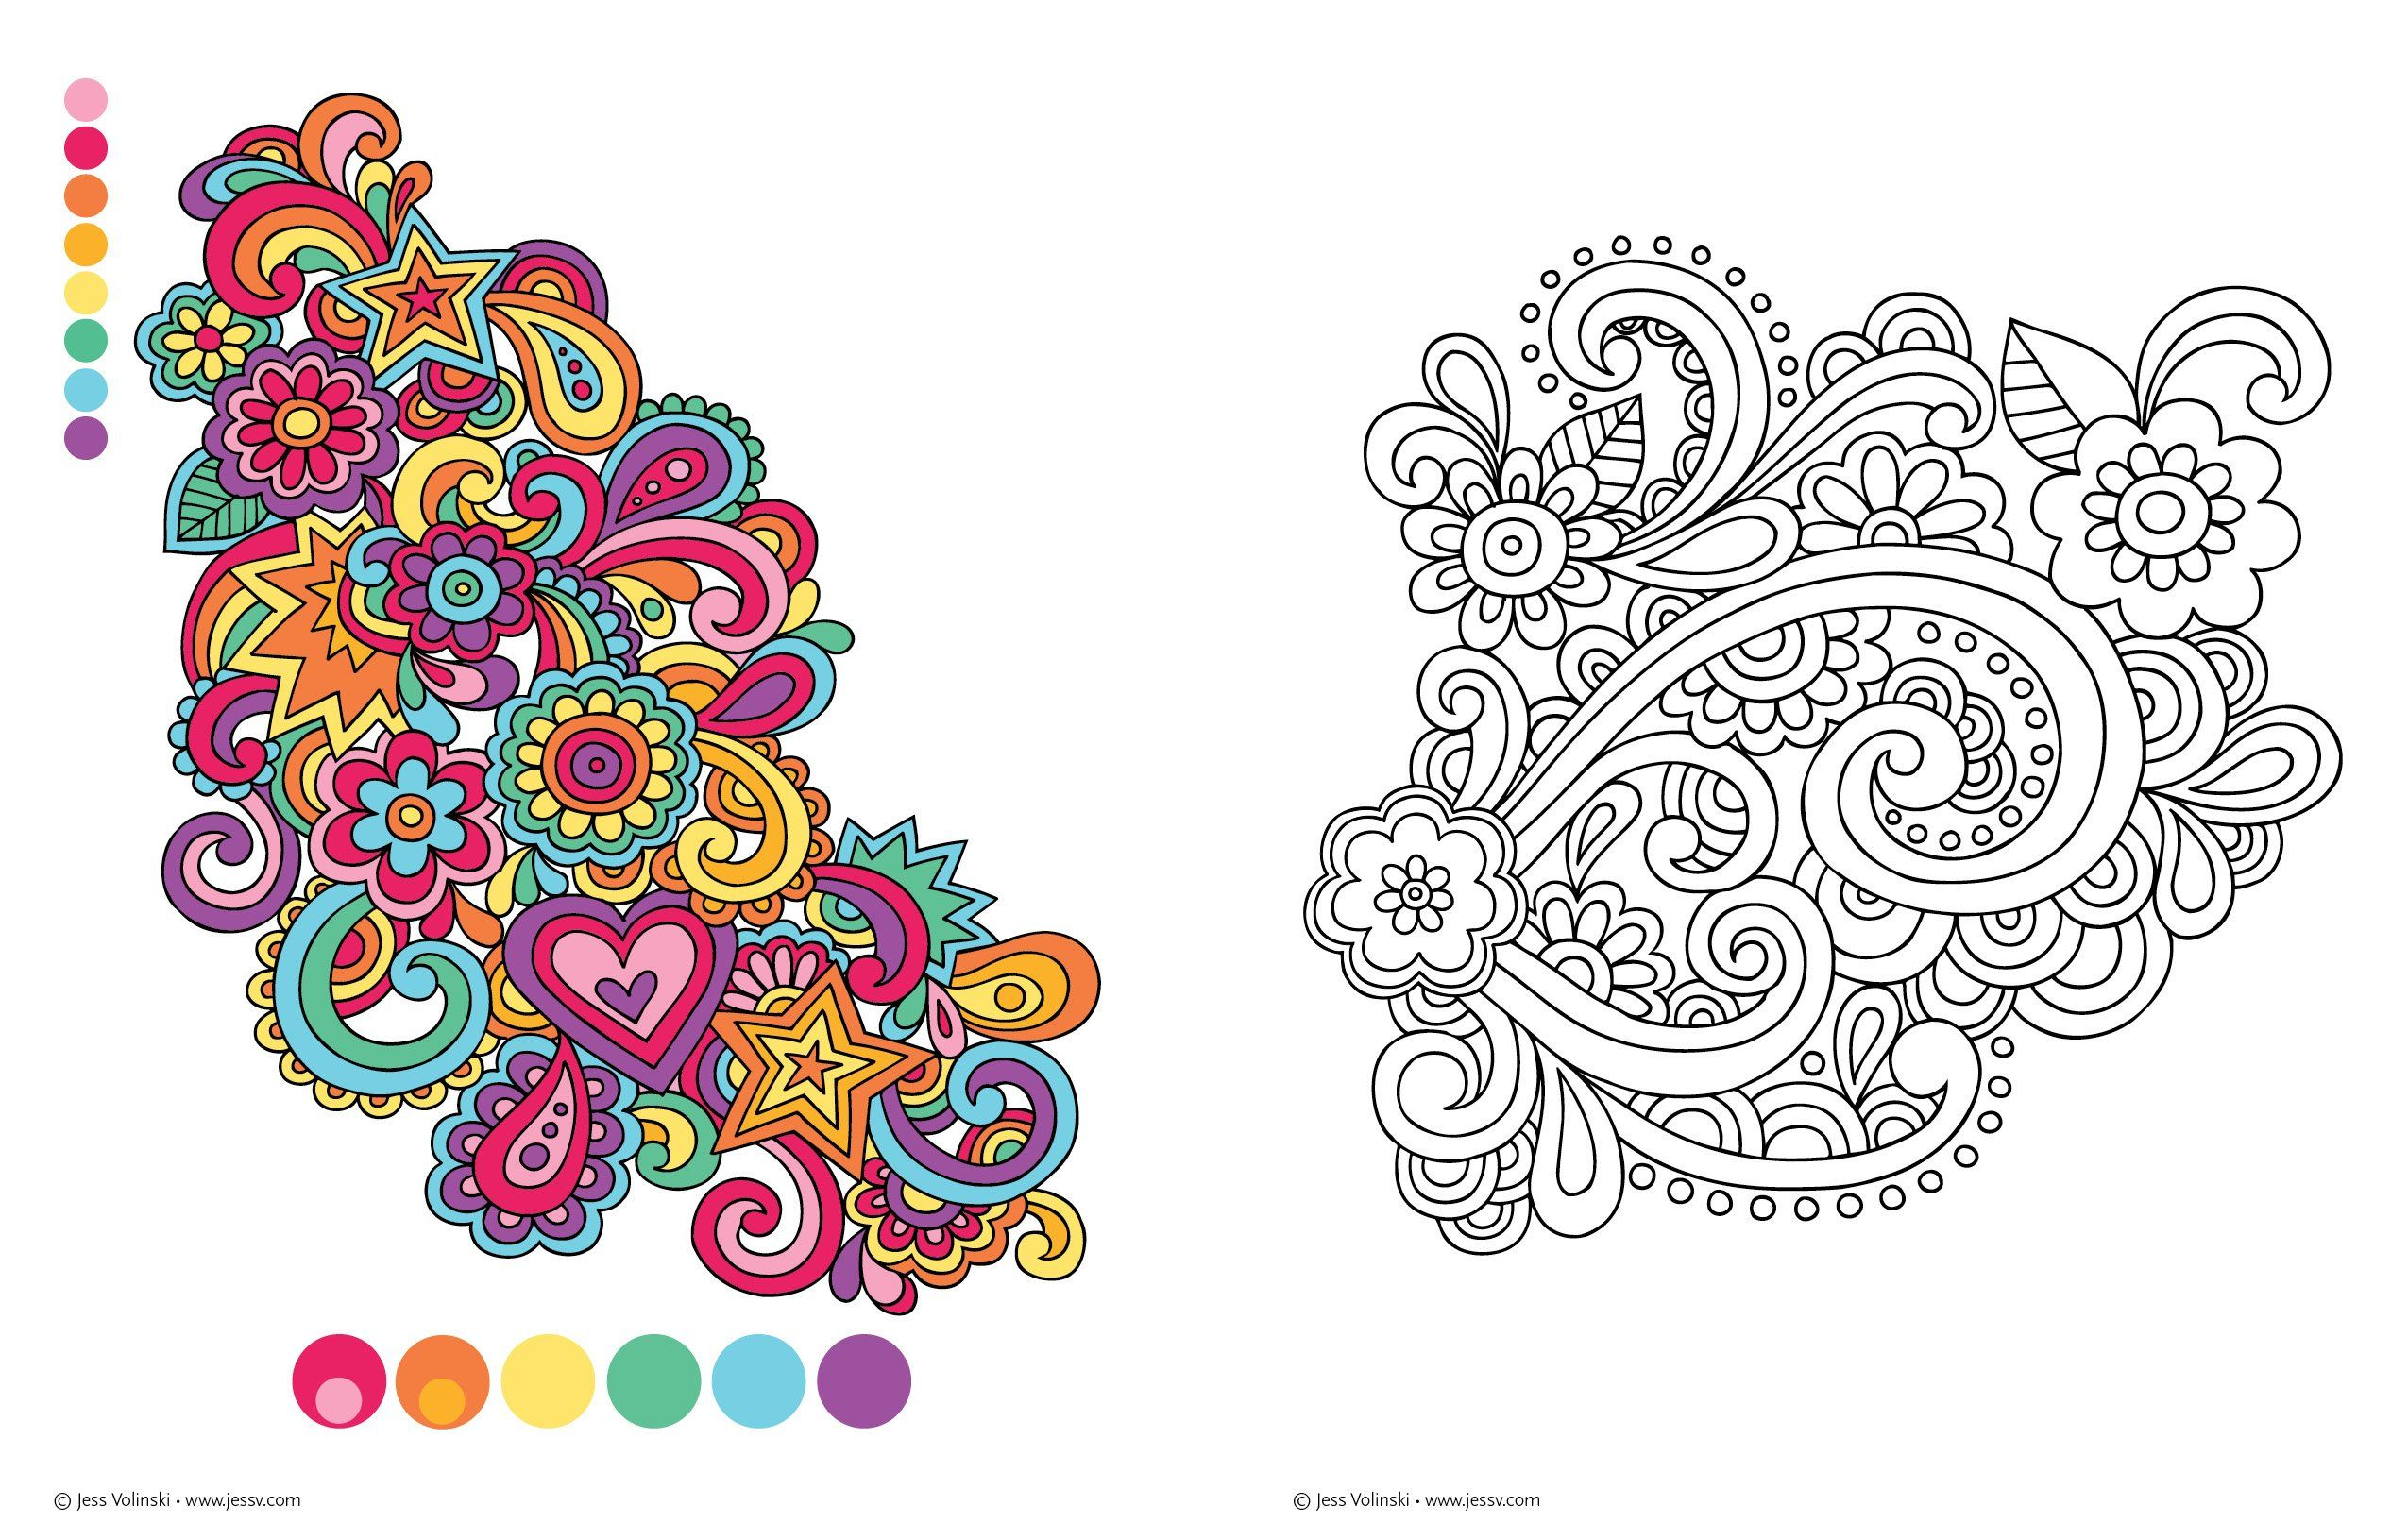 Notebook Doodles Color Swirl Coloring Activity Book Design Originals 32 Curly Swirly Designs Beg Designs Coloring Books Doodle Coloring Notebook Doodles